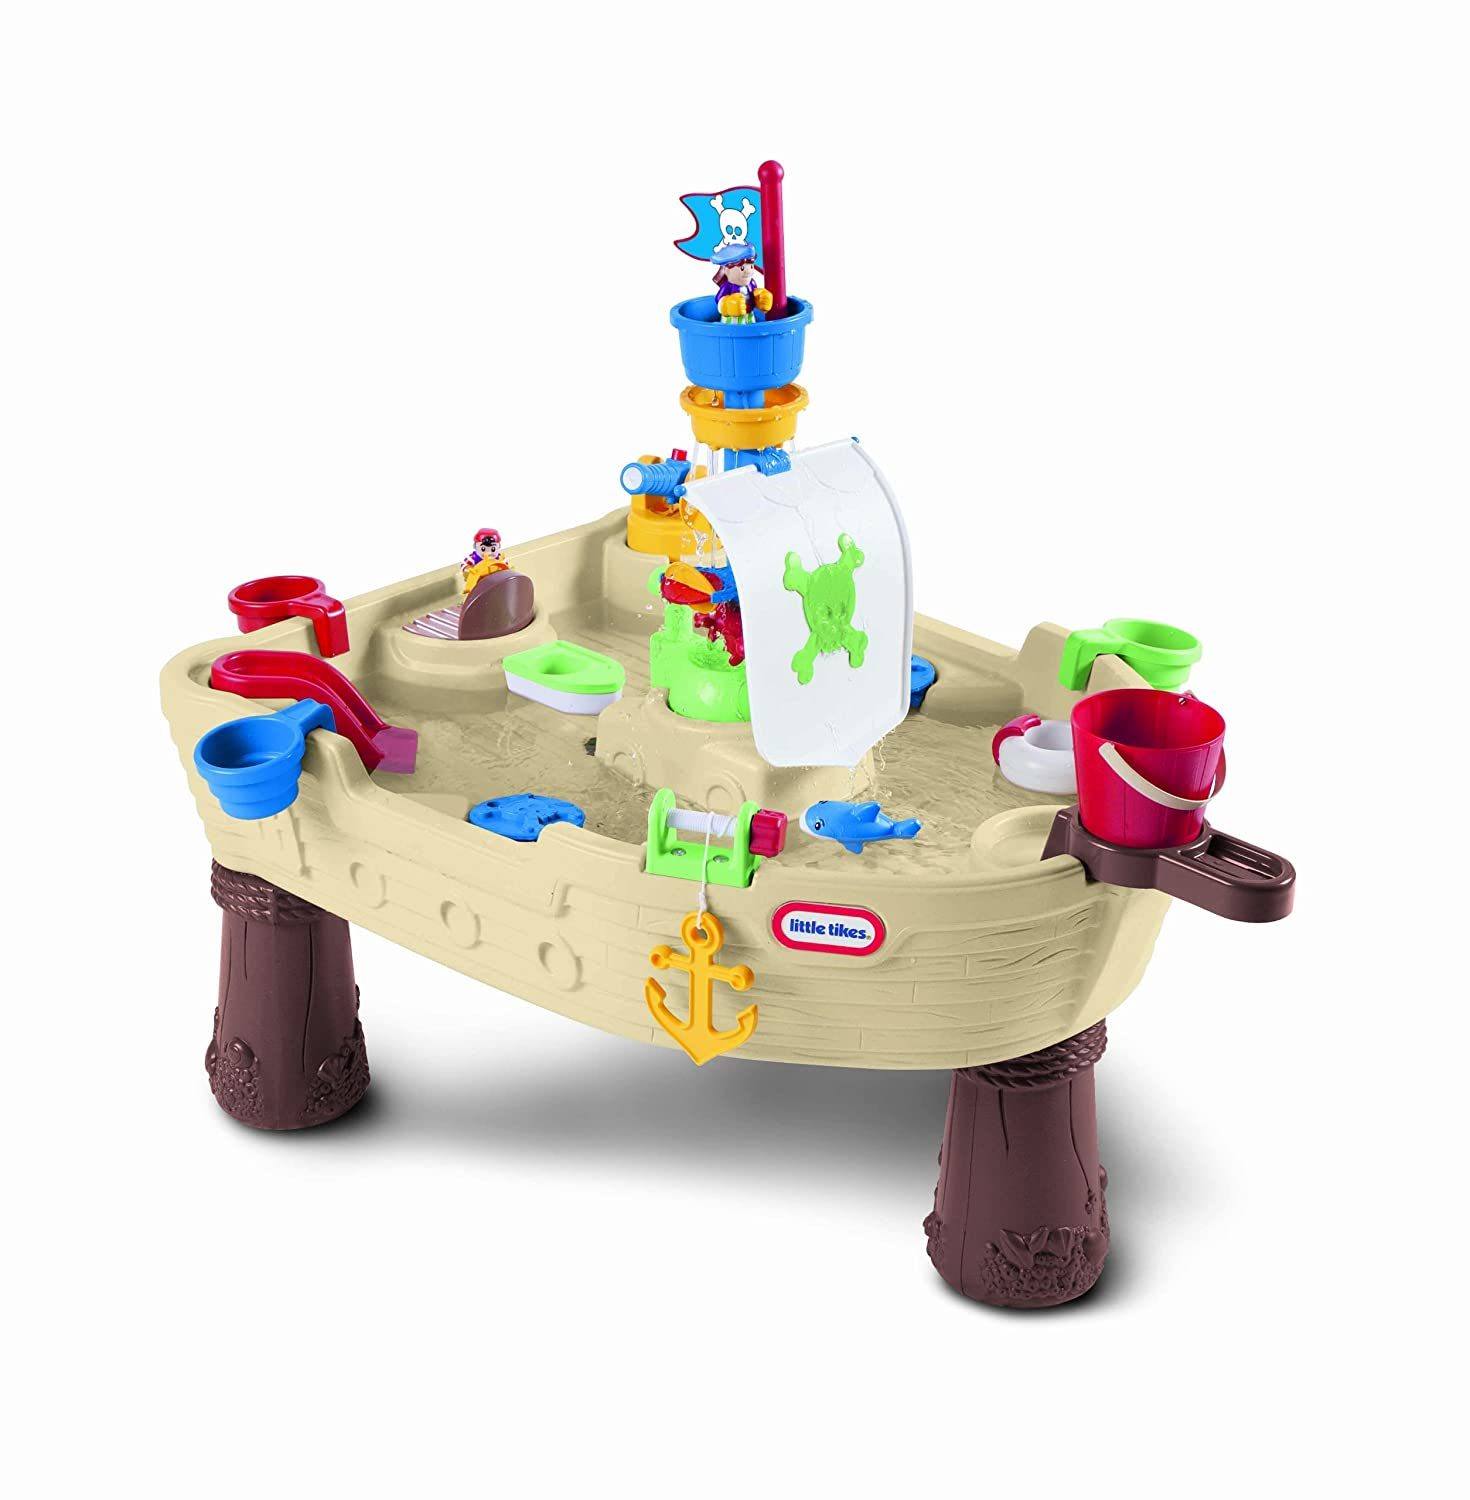 Top 11 Best Water Tables for Kids and Toddlers Reviews in 2021 17